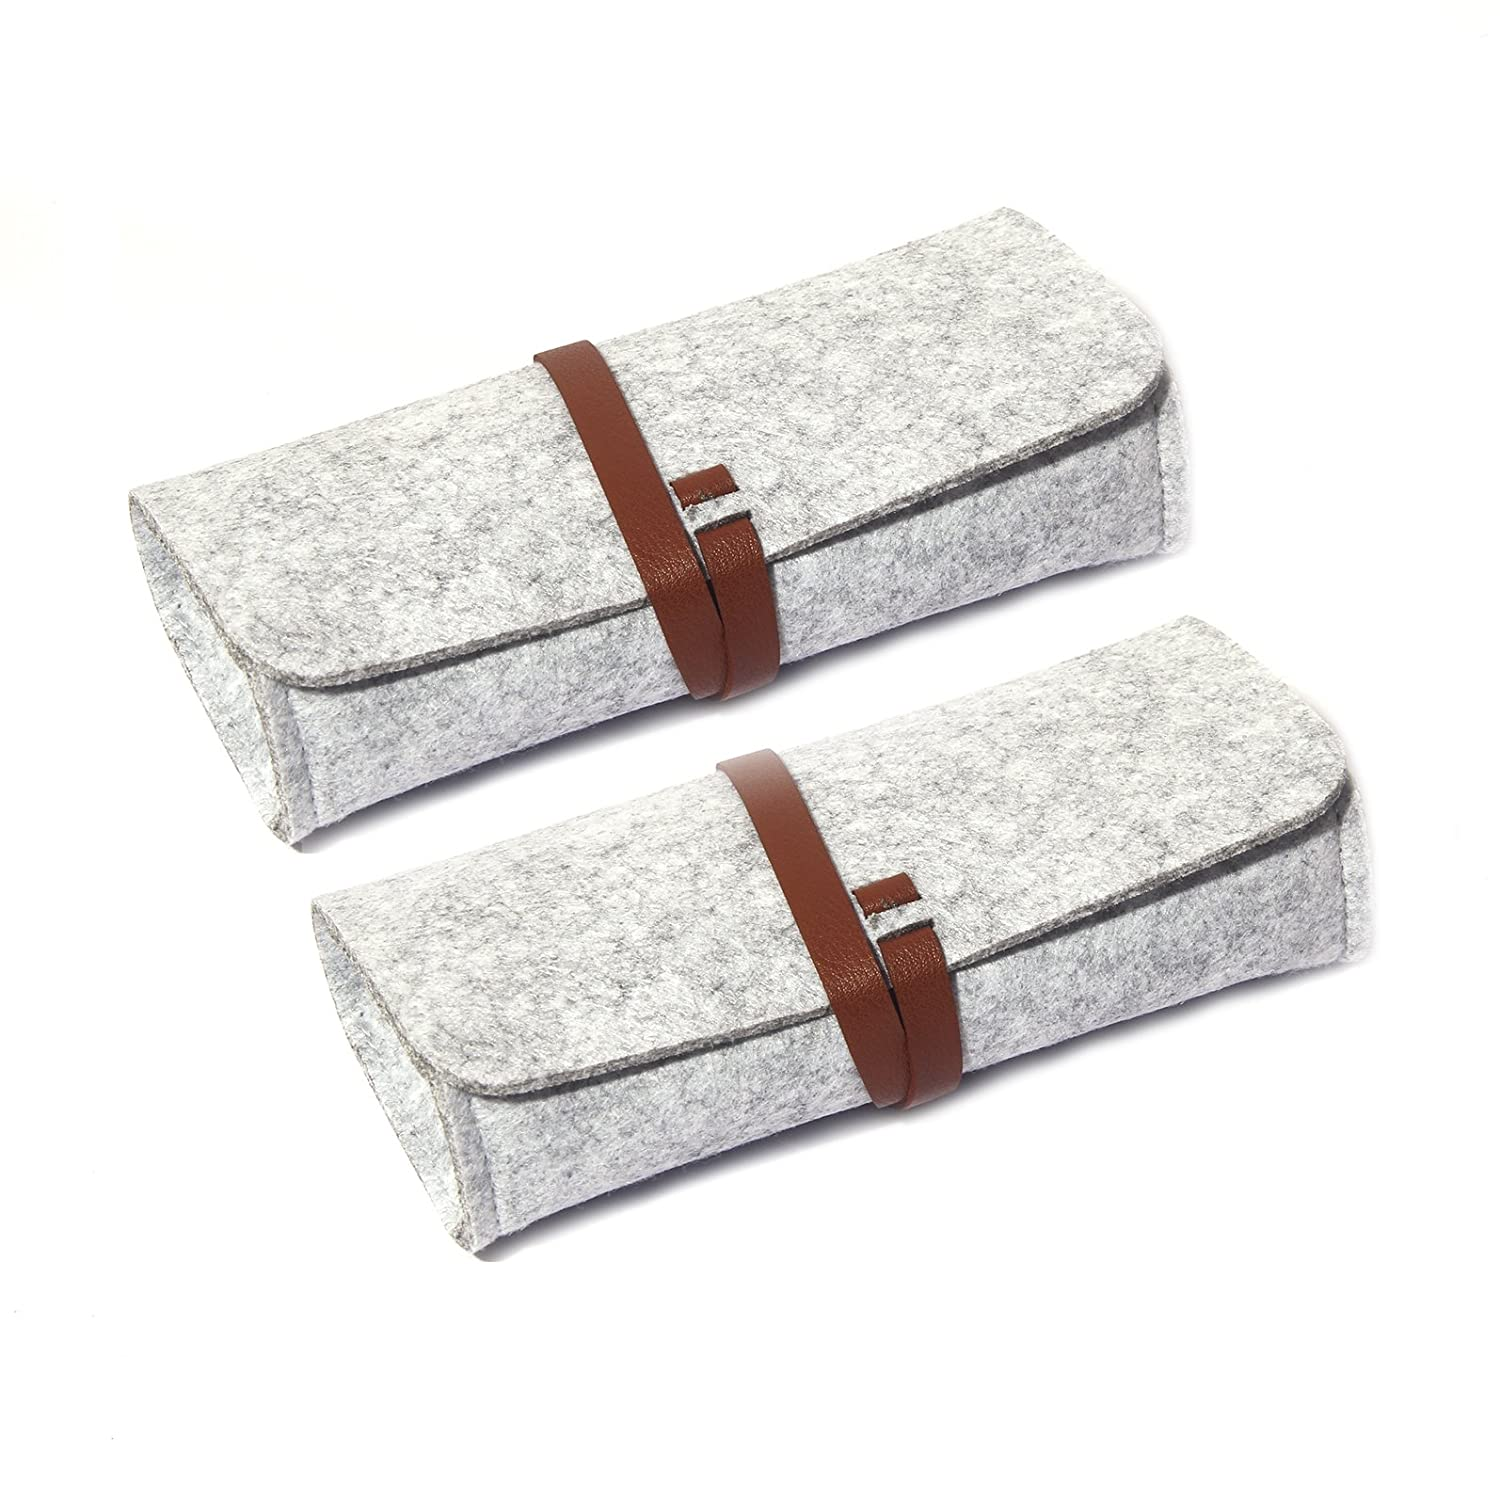 Felt Eyeglass Case, 2 Pack Sunglasses Pouch